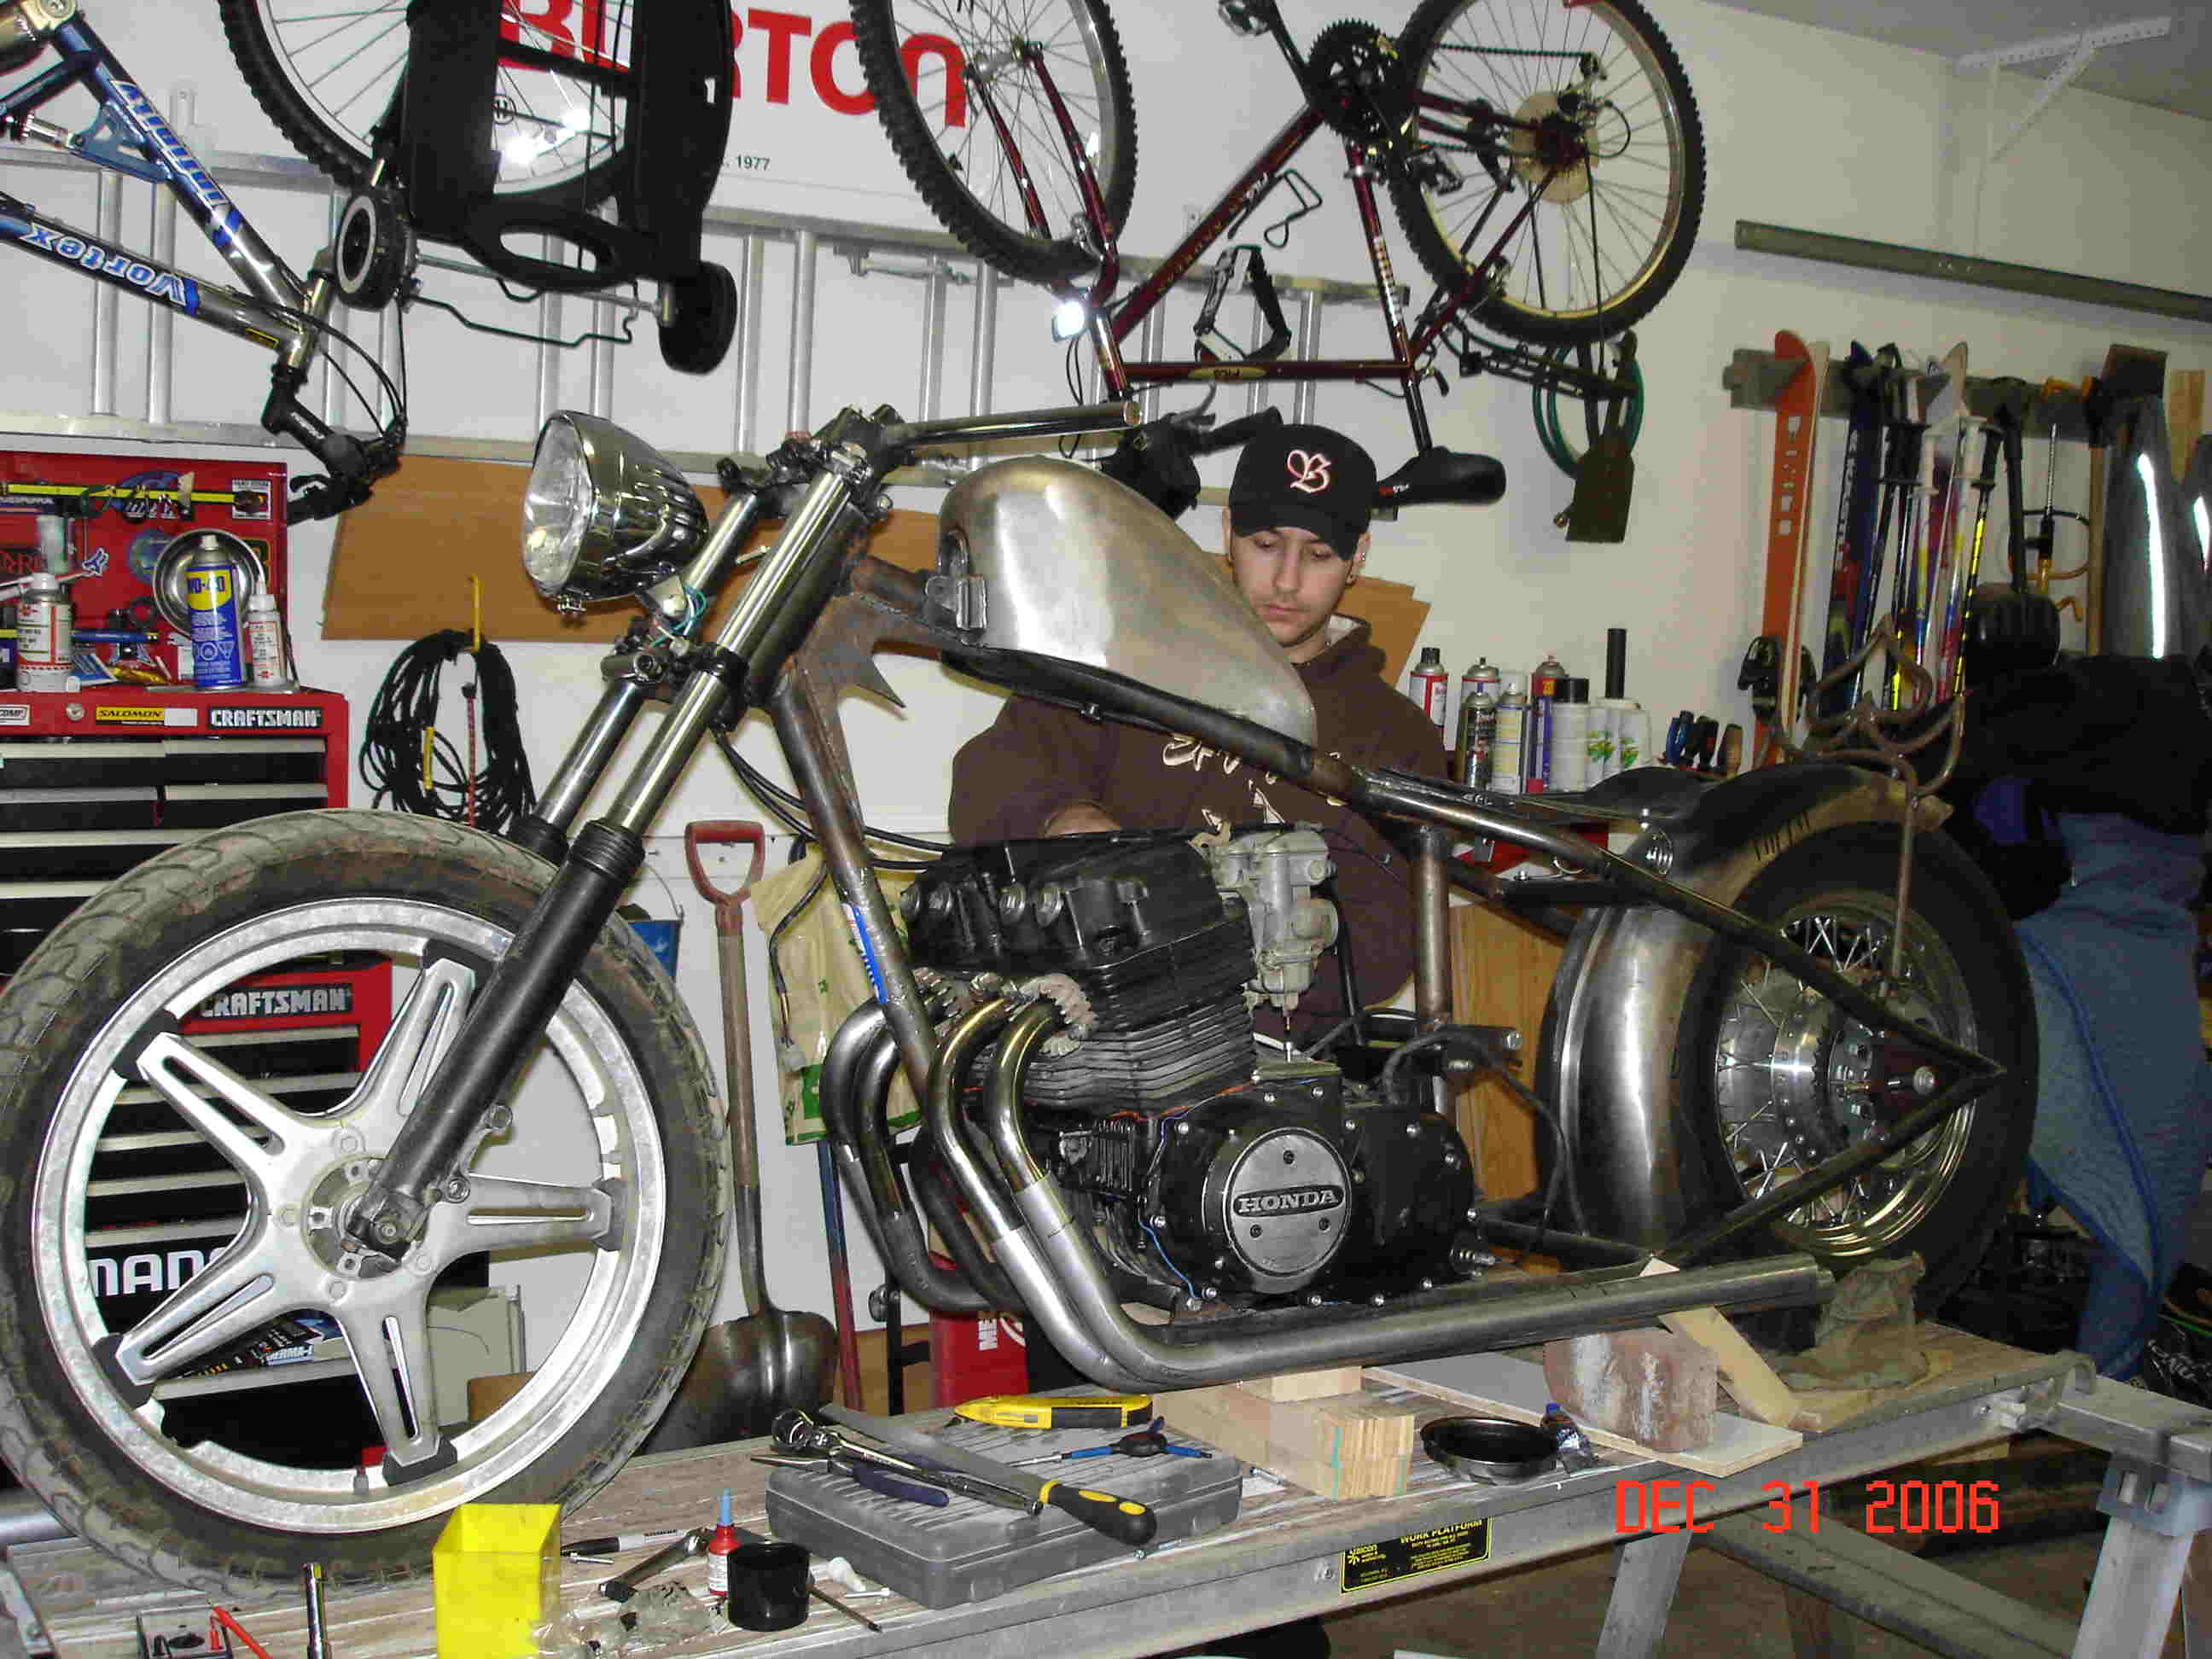 Honda CB750 SOHC Rigid Chopper